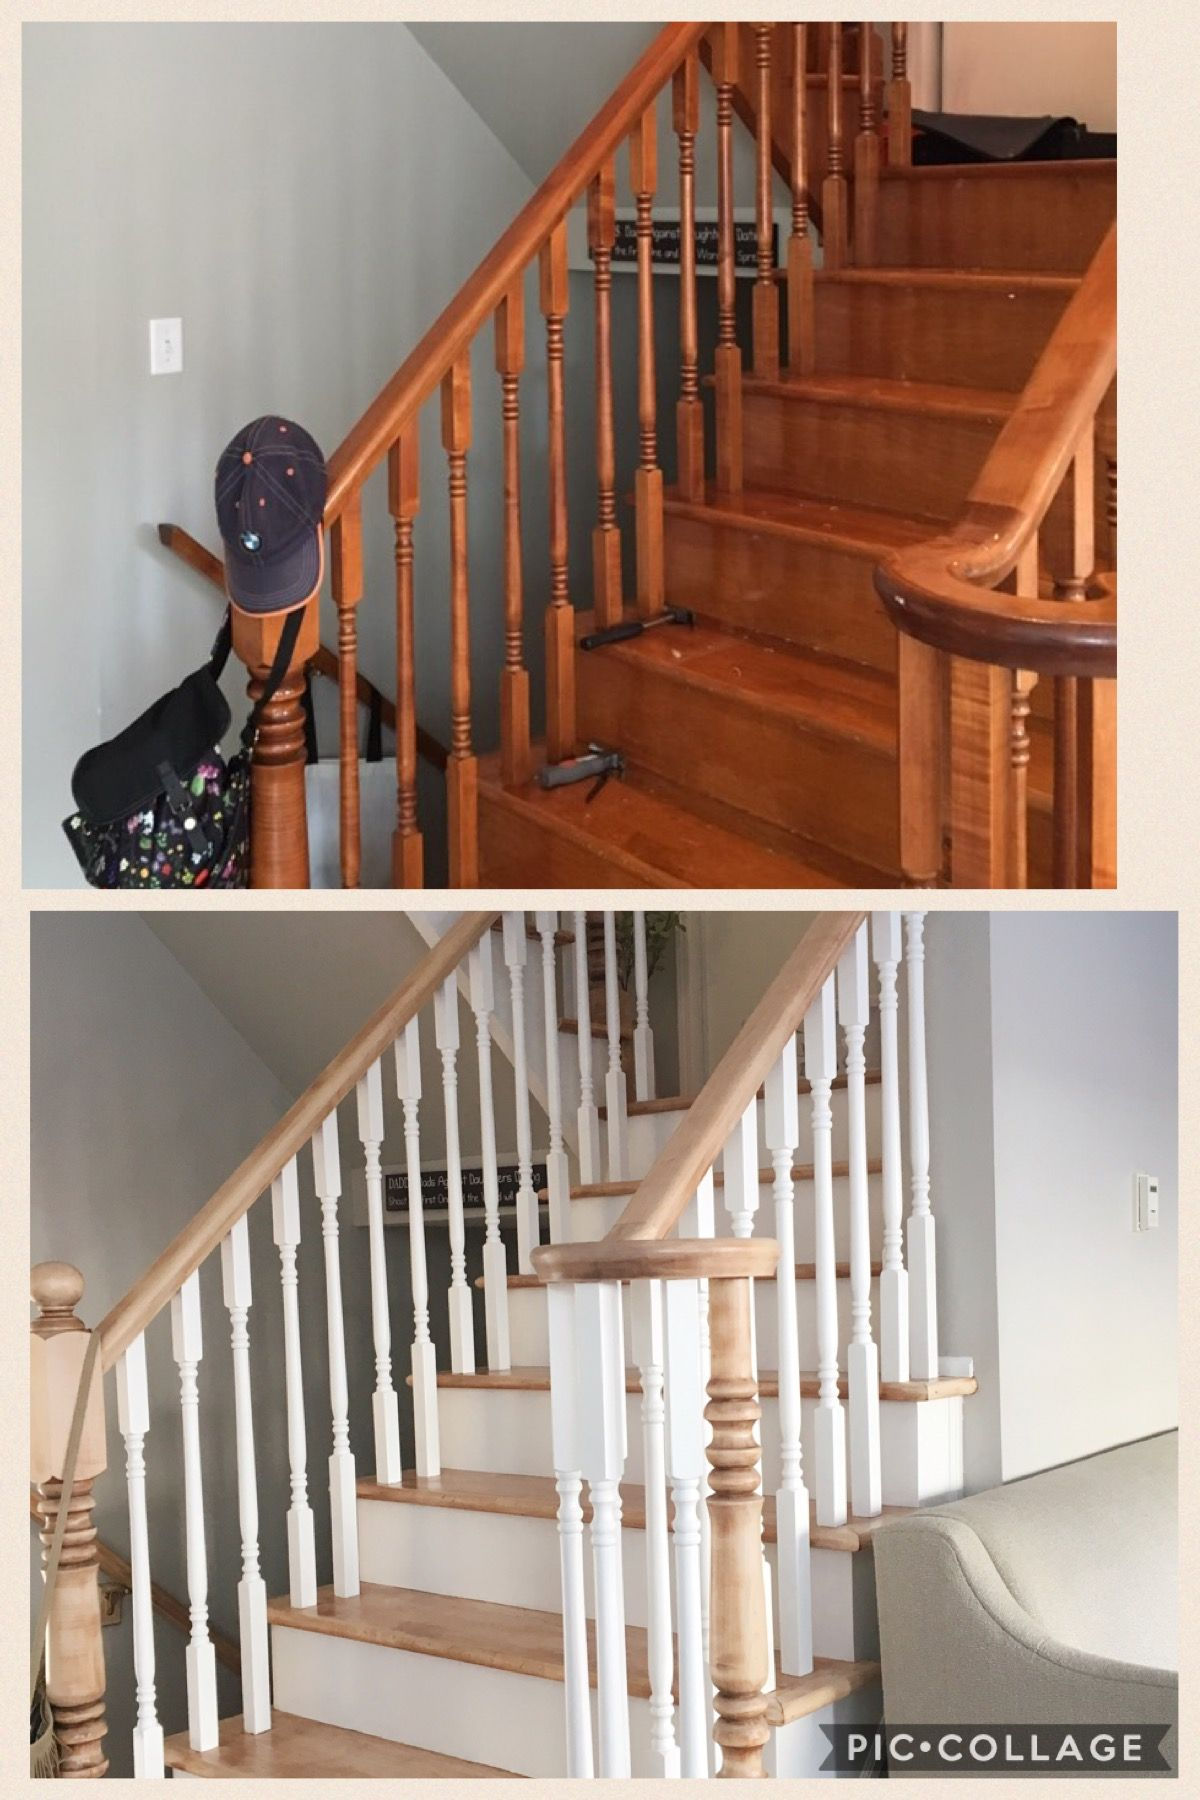 Best Maple Stairs Refinished Project 2016 Eclectic Design 400 x 300